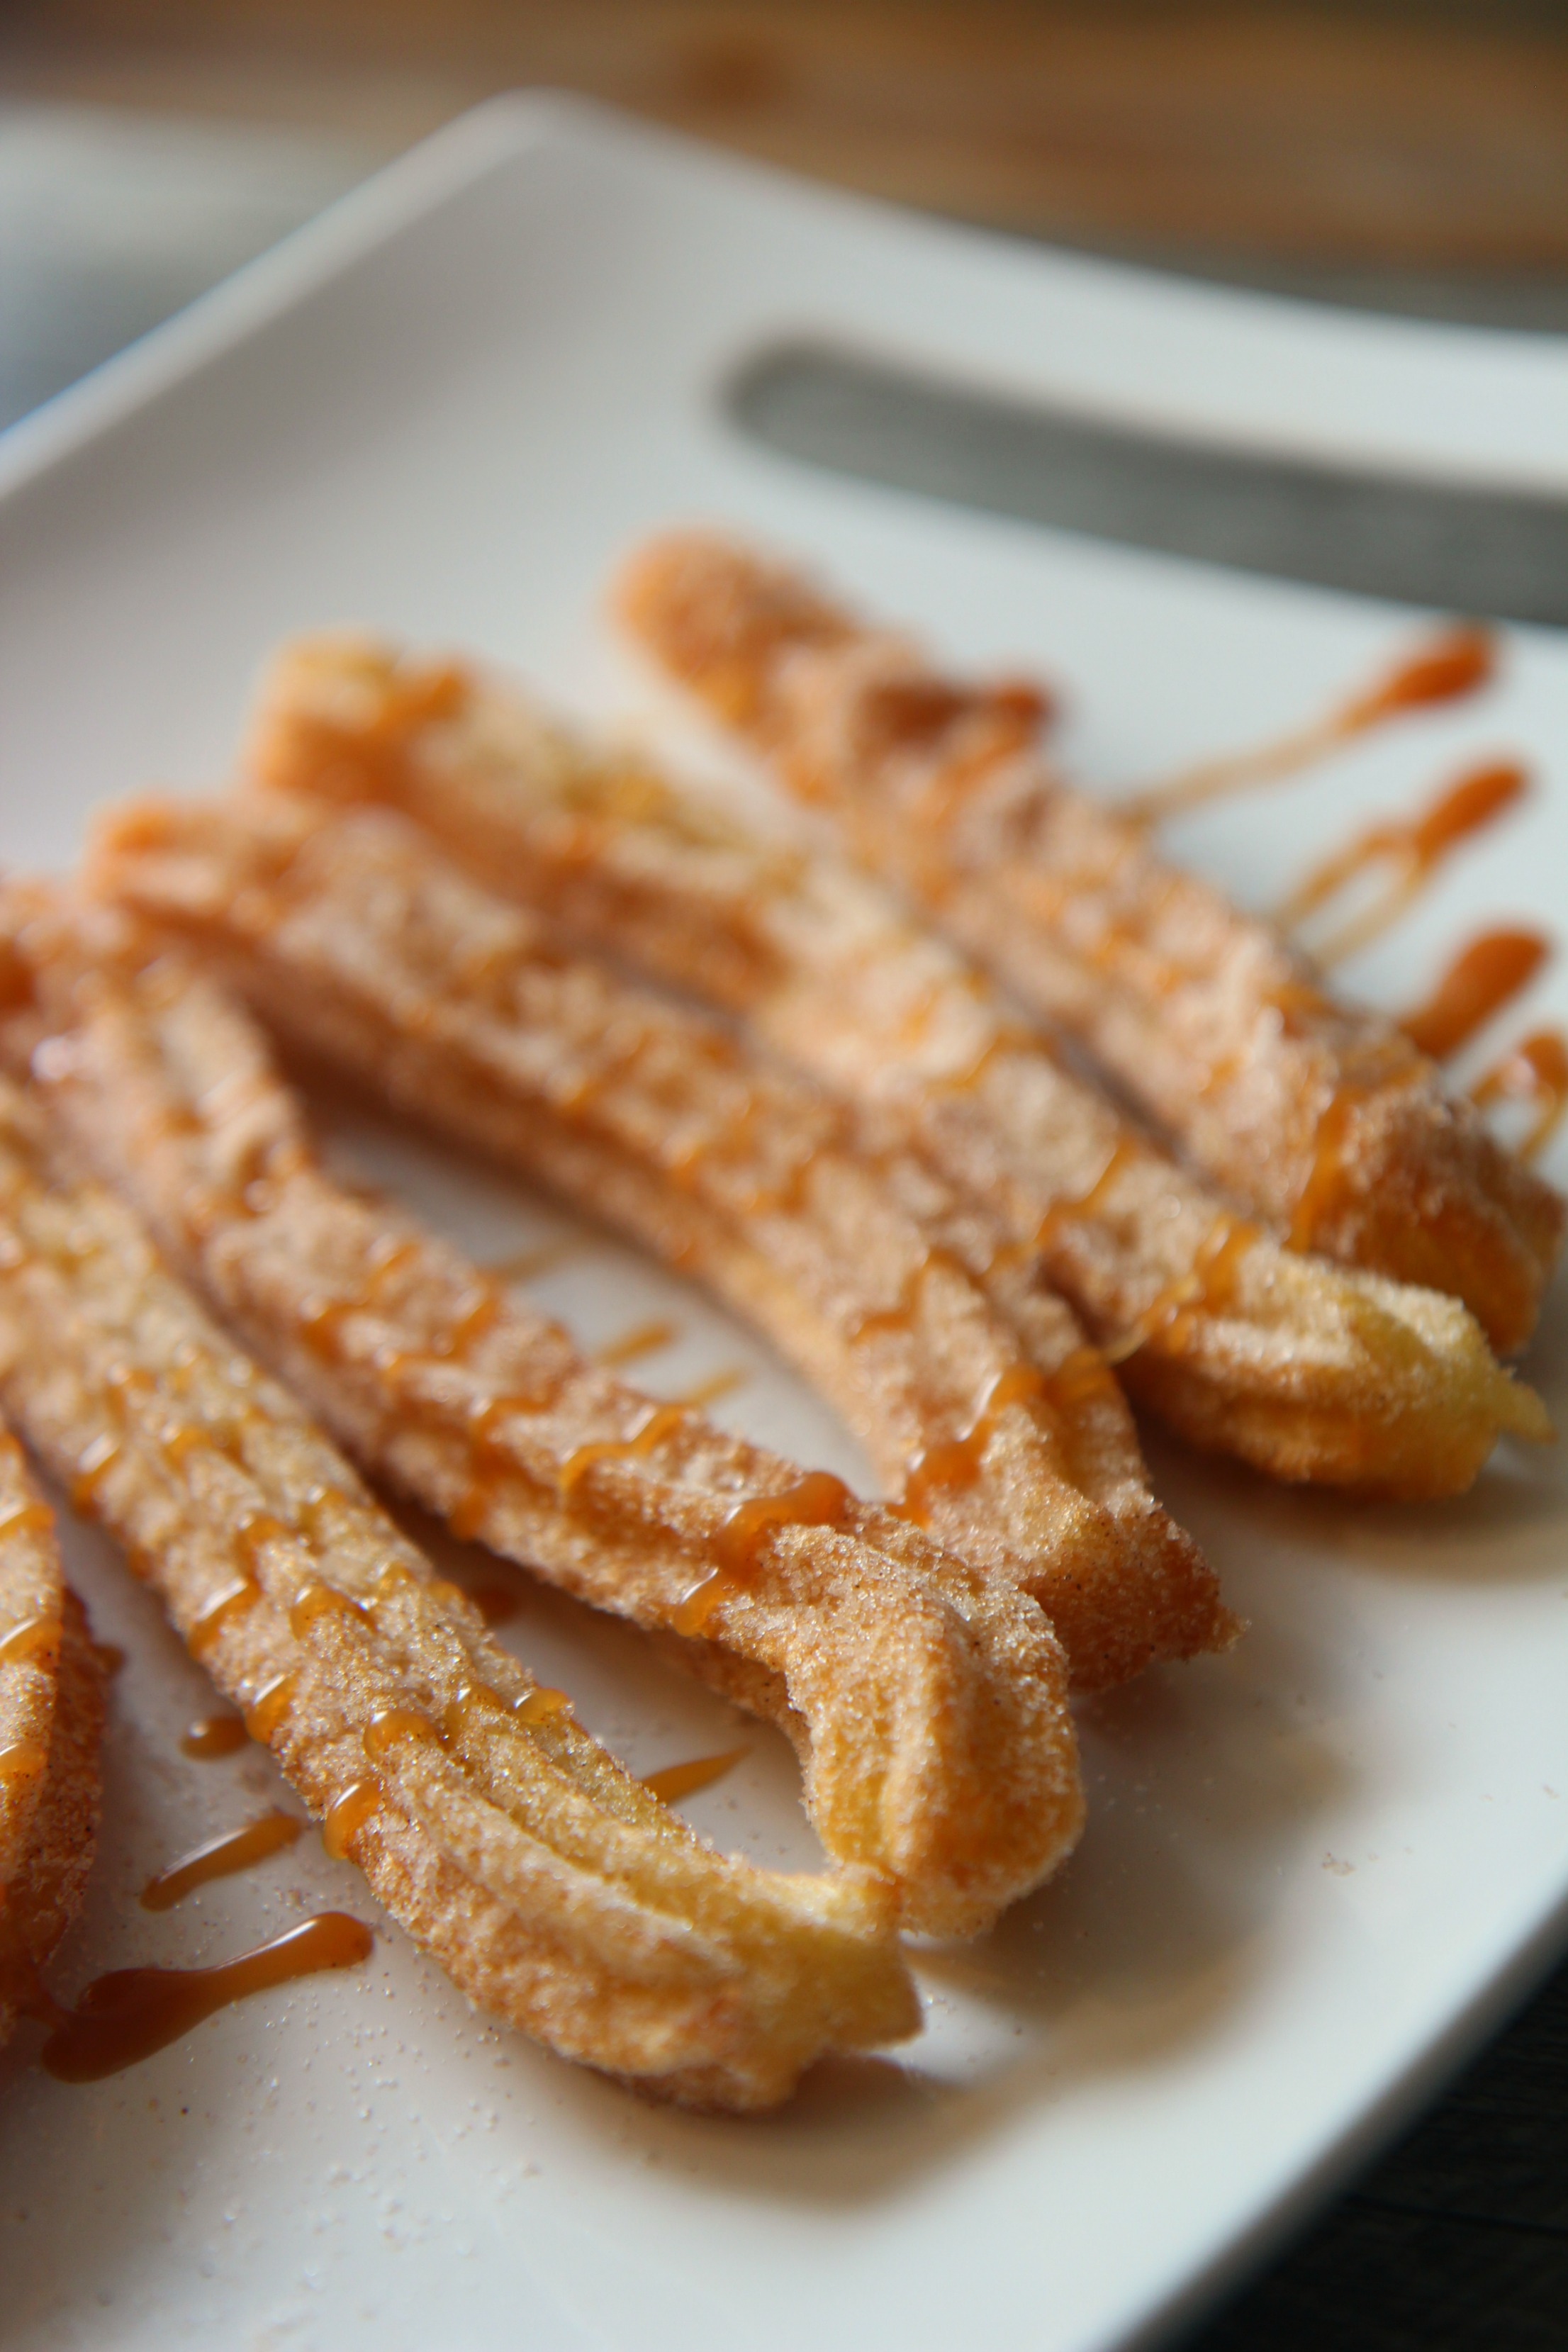 A street cart favorite, these lightly fried dough snacks can be covered in caramel or sugar.